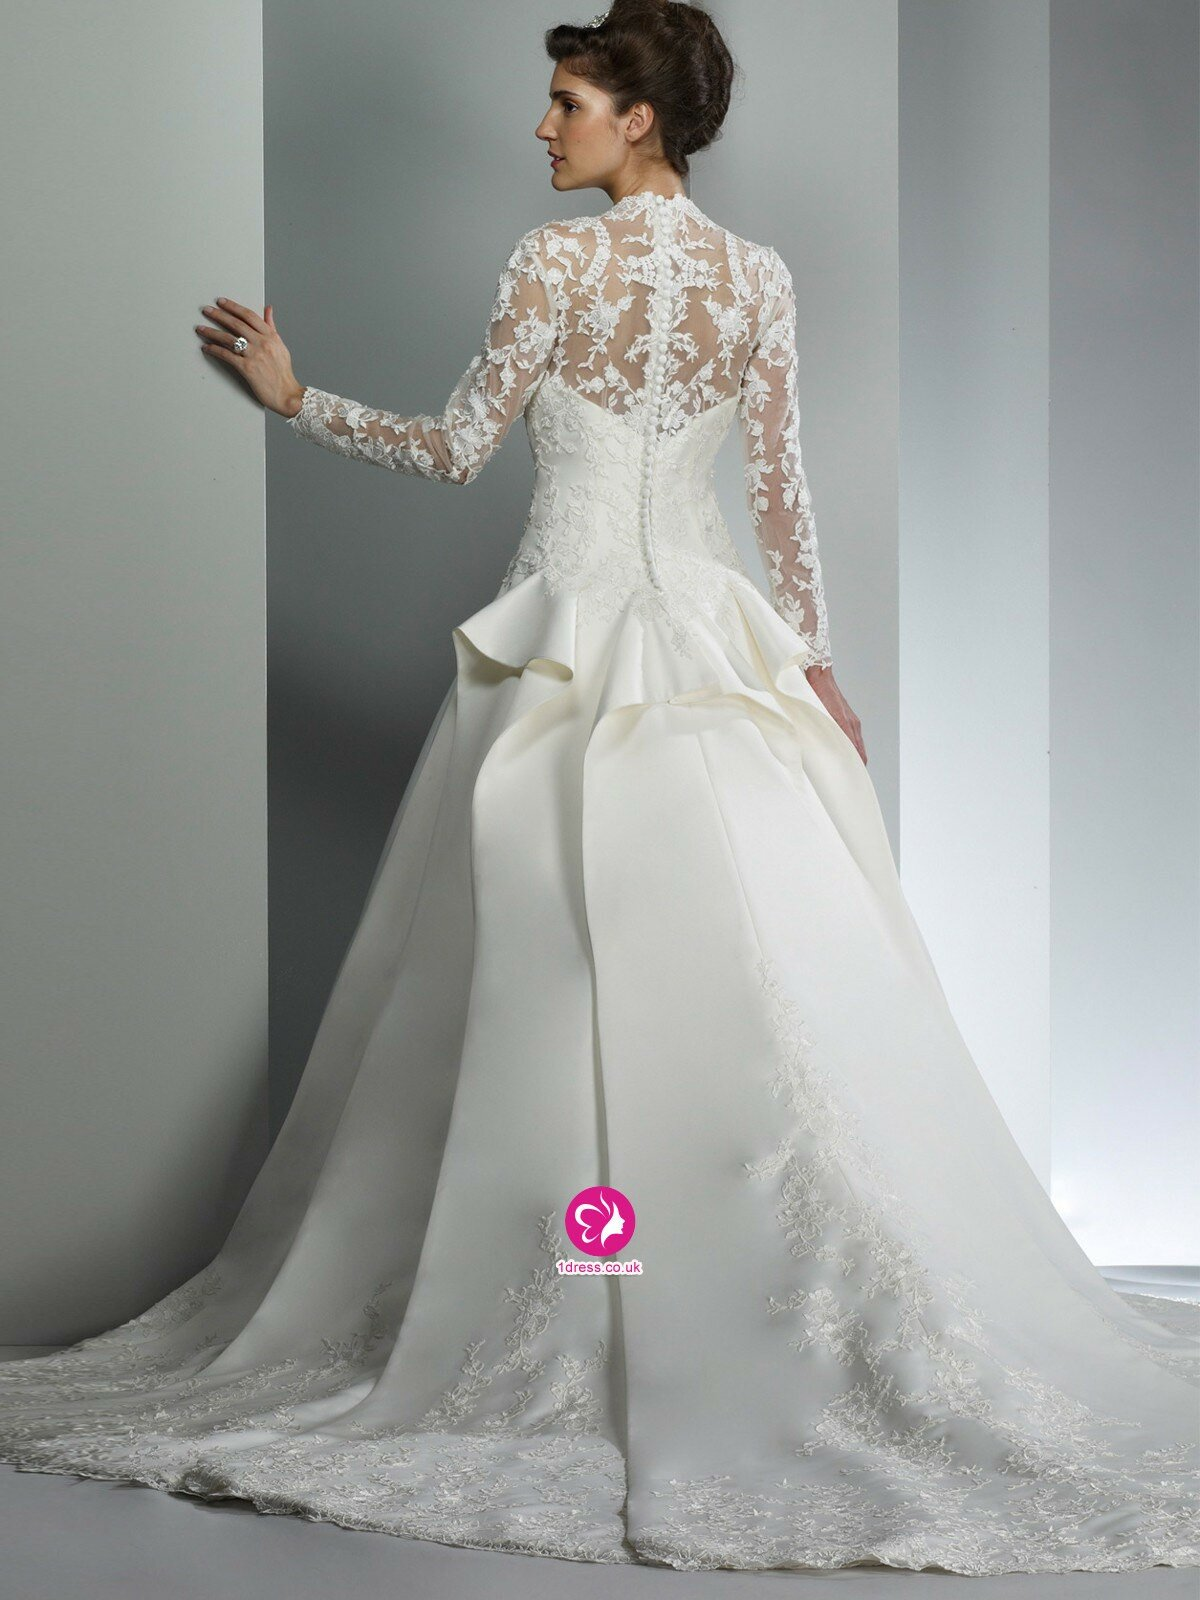 Wedding lace dresses with sleeves pictures ideas guide for Cheap lace wedding dresses with sleeves